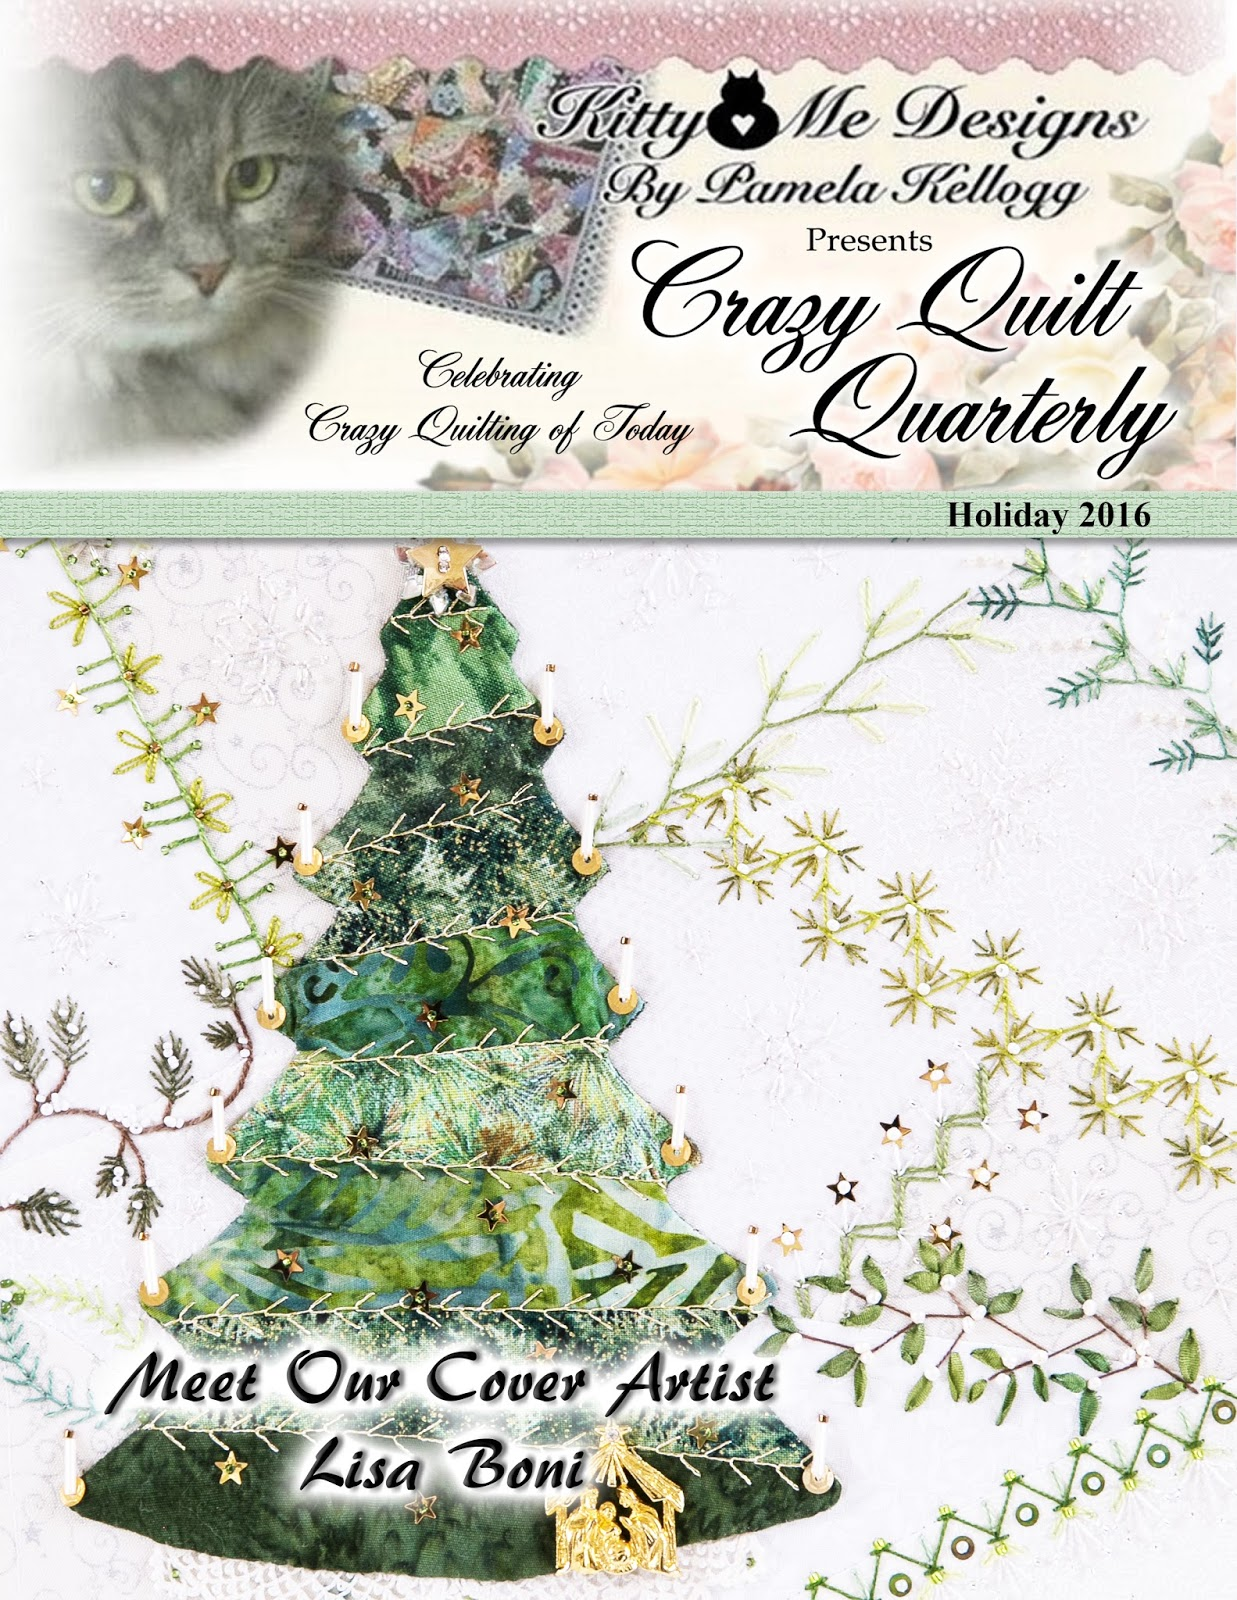 Crazy Quilt Quarterly Holiday 2016 issue